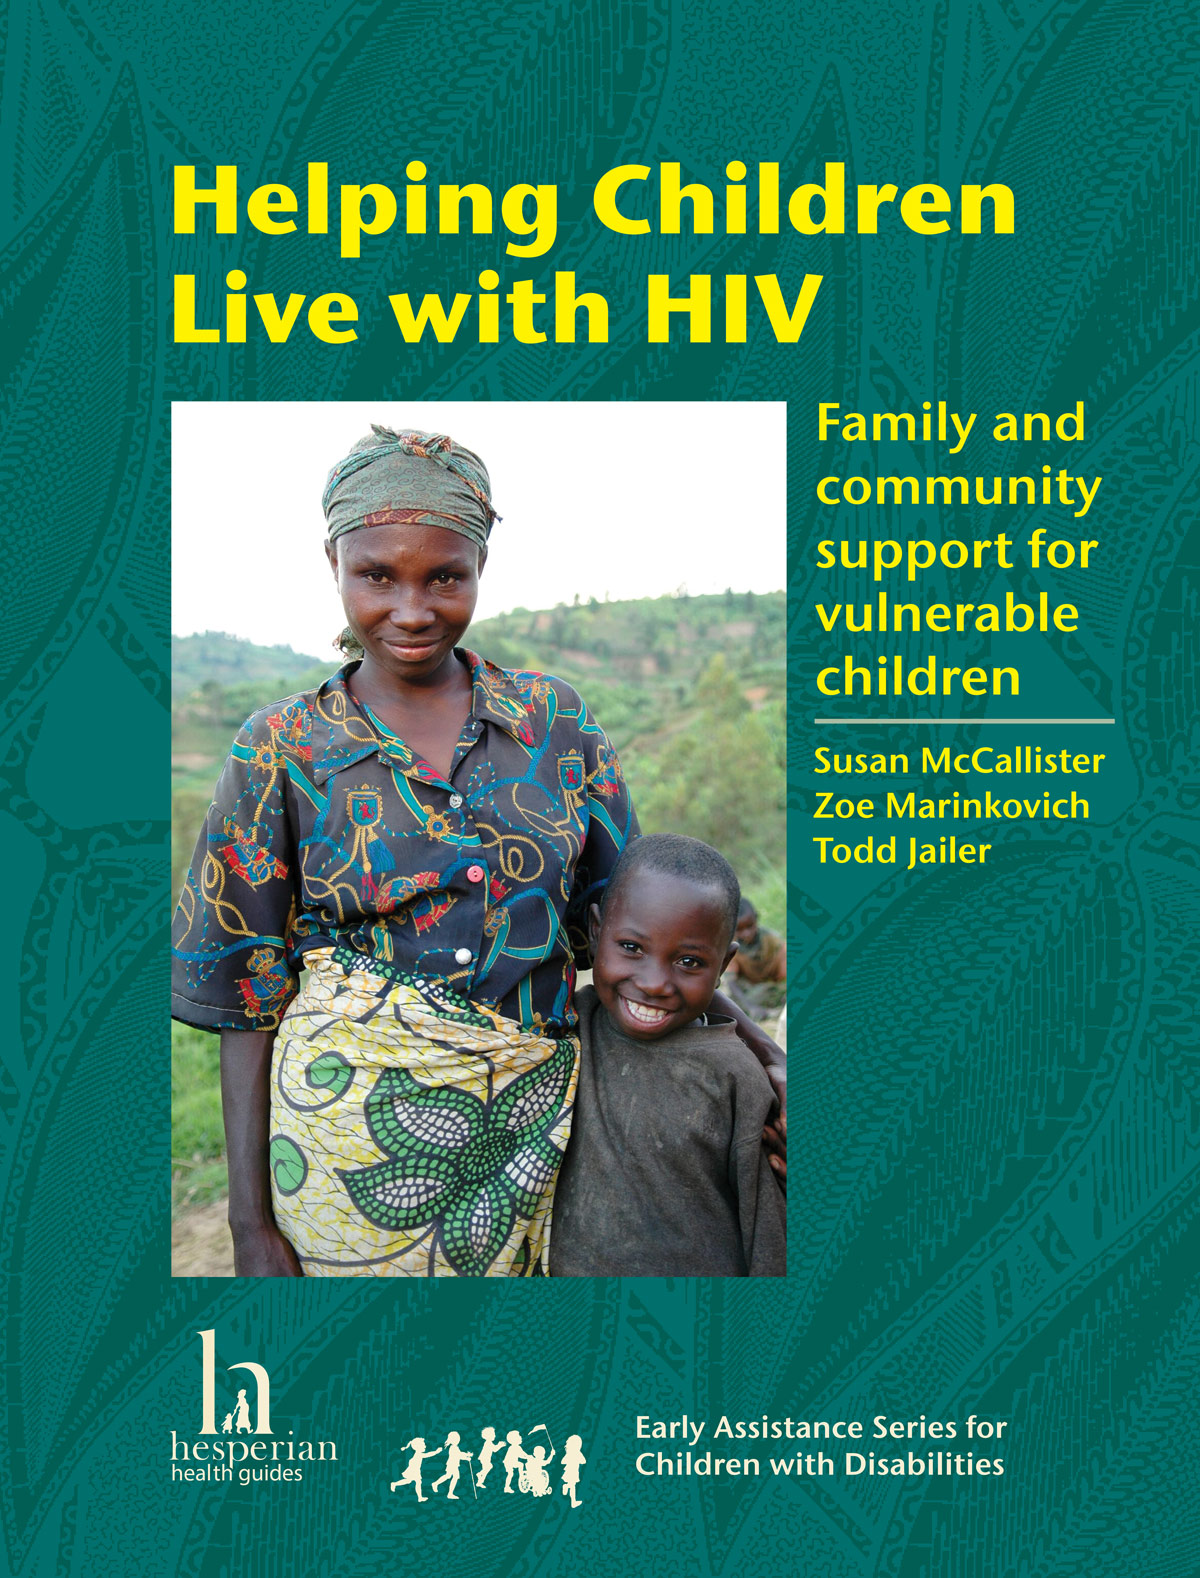 New book shares proven ways to help children live with HIV